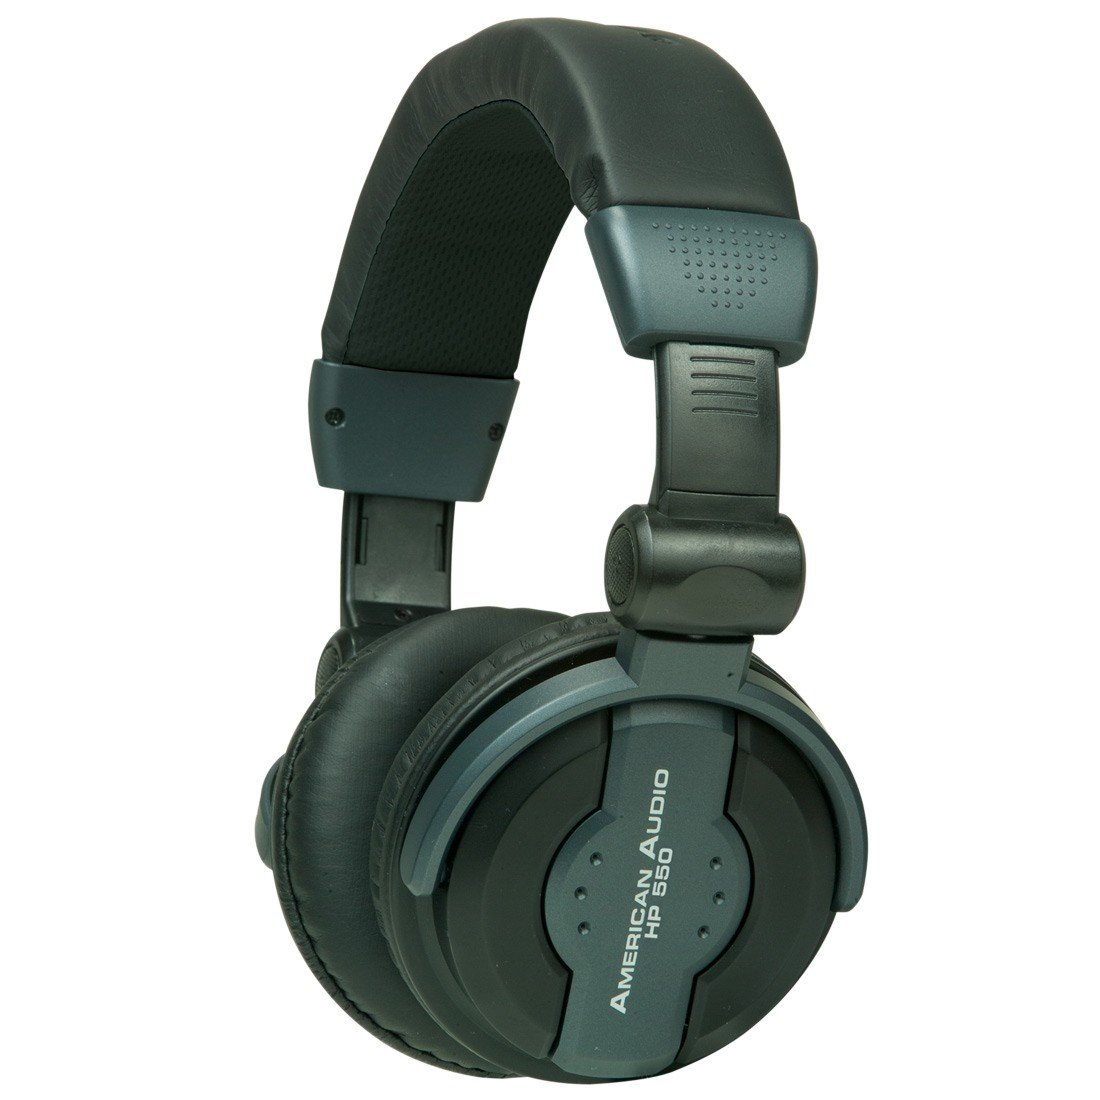 American Dj Hp 550 Pro Dj Headphones American DJ Supply HP550